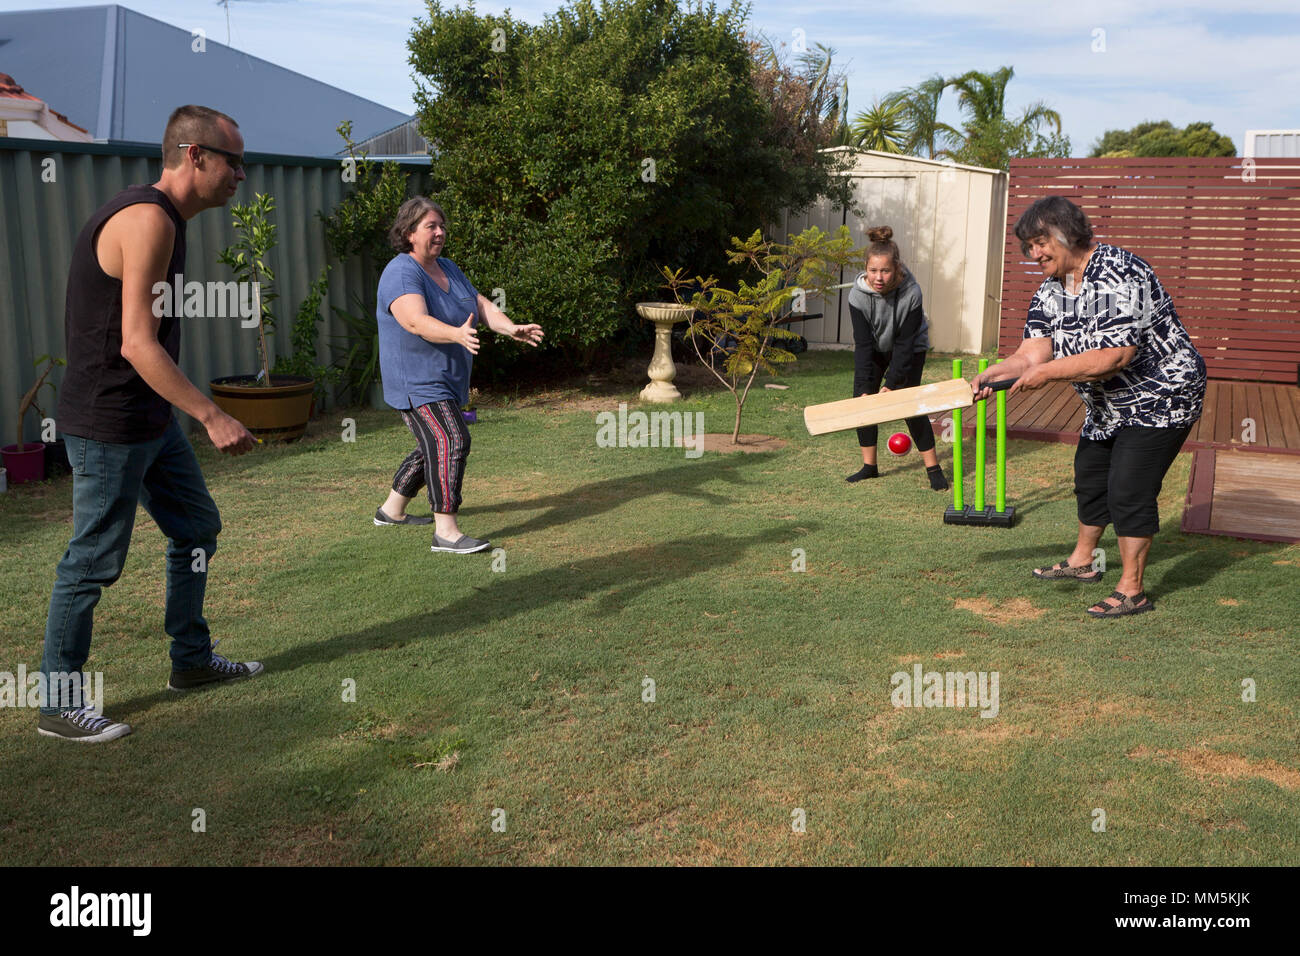 A family playing cricket in the back yard. - Stock Image